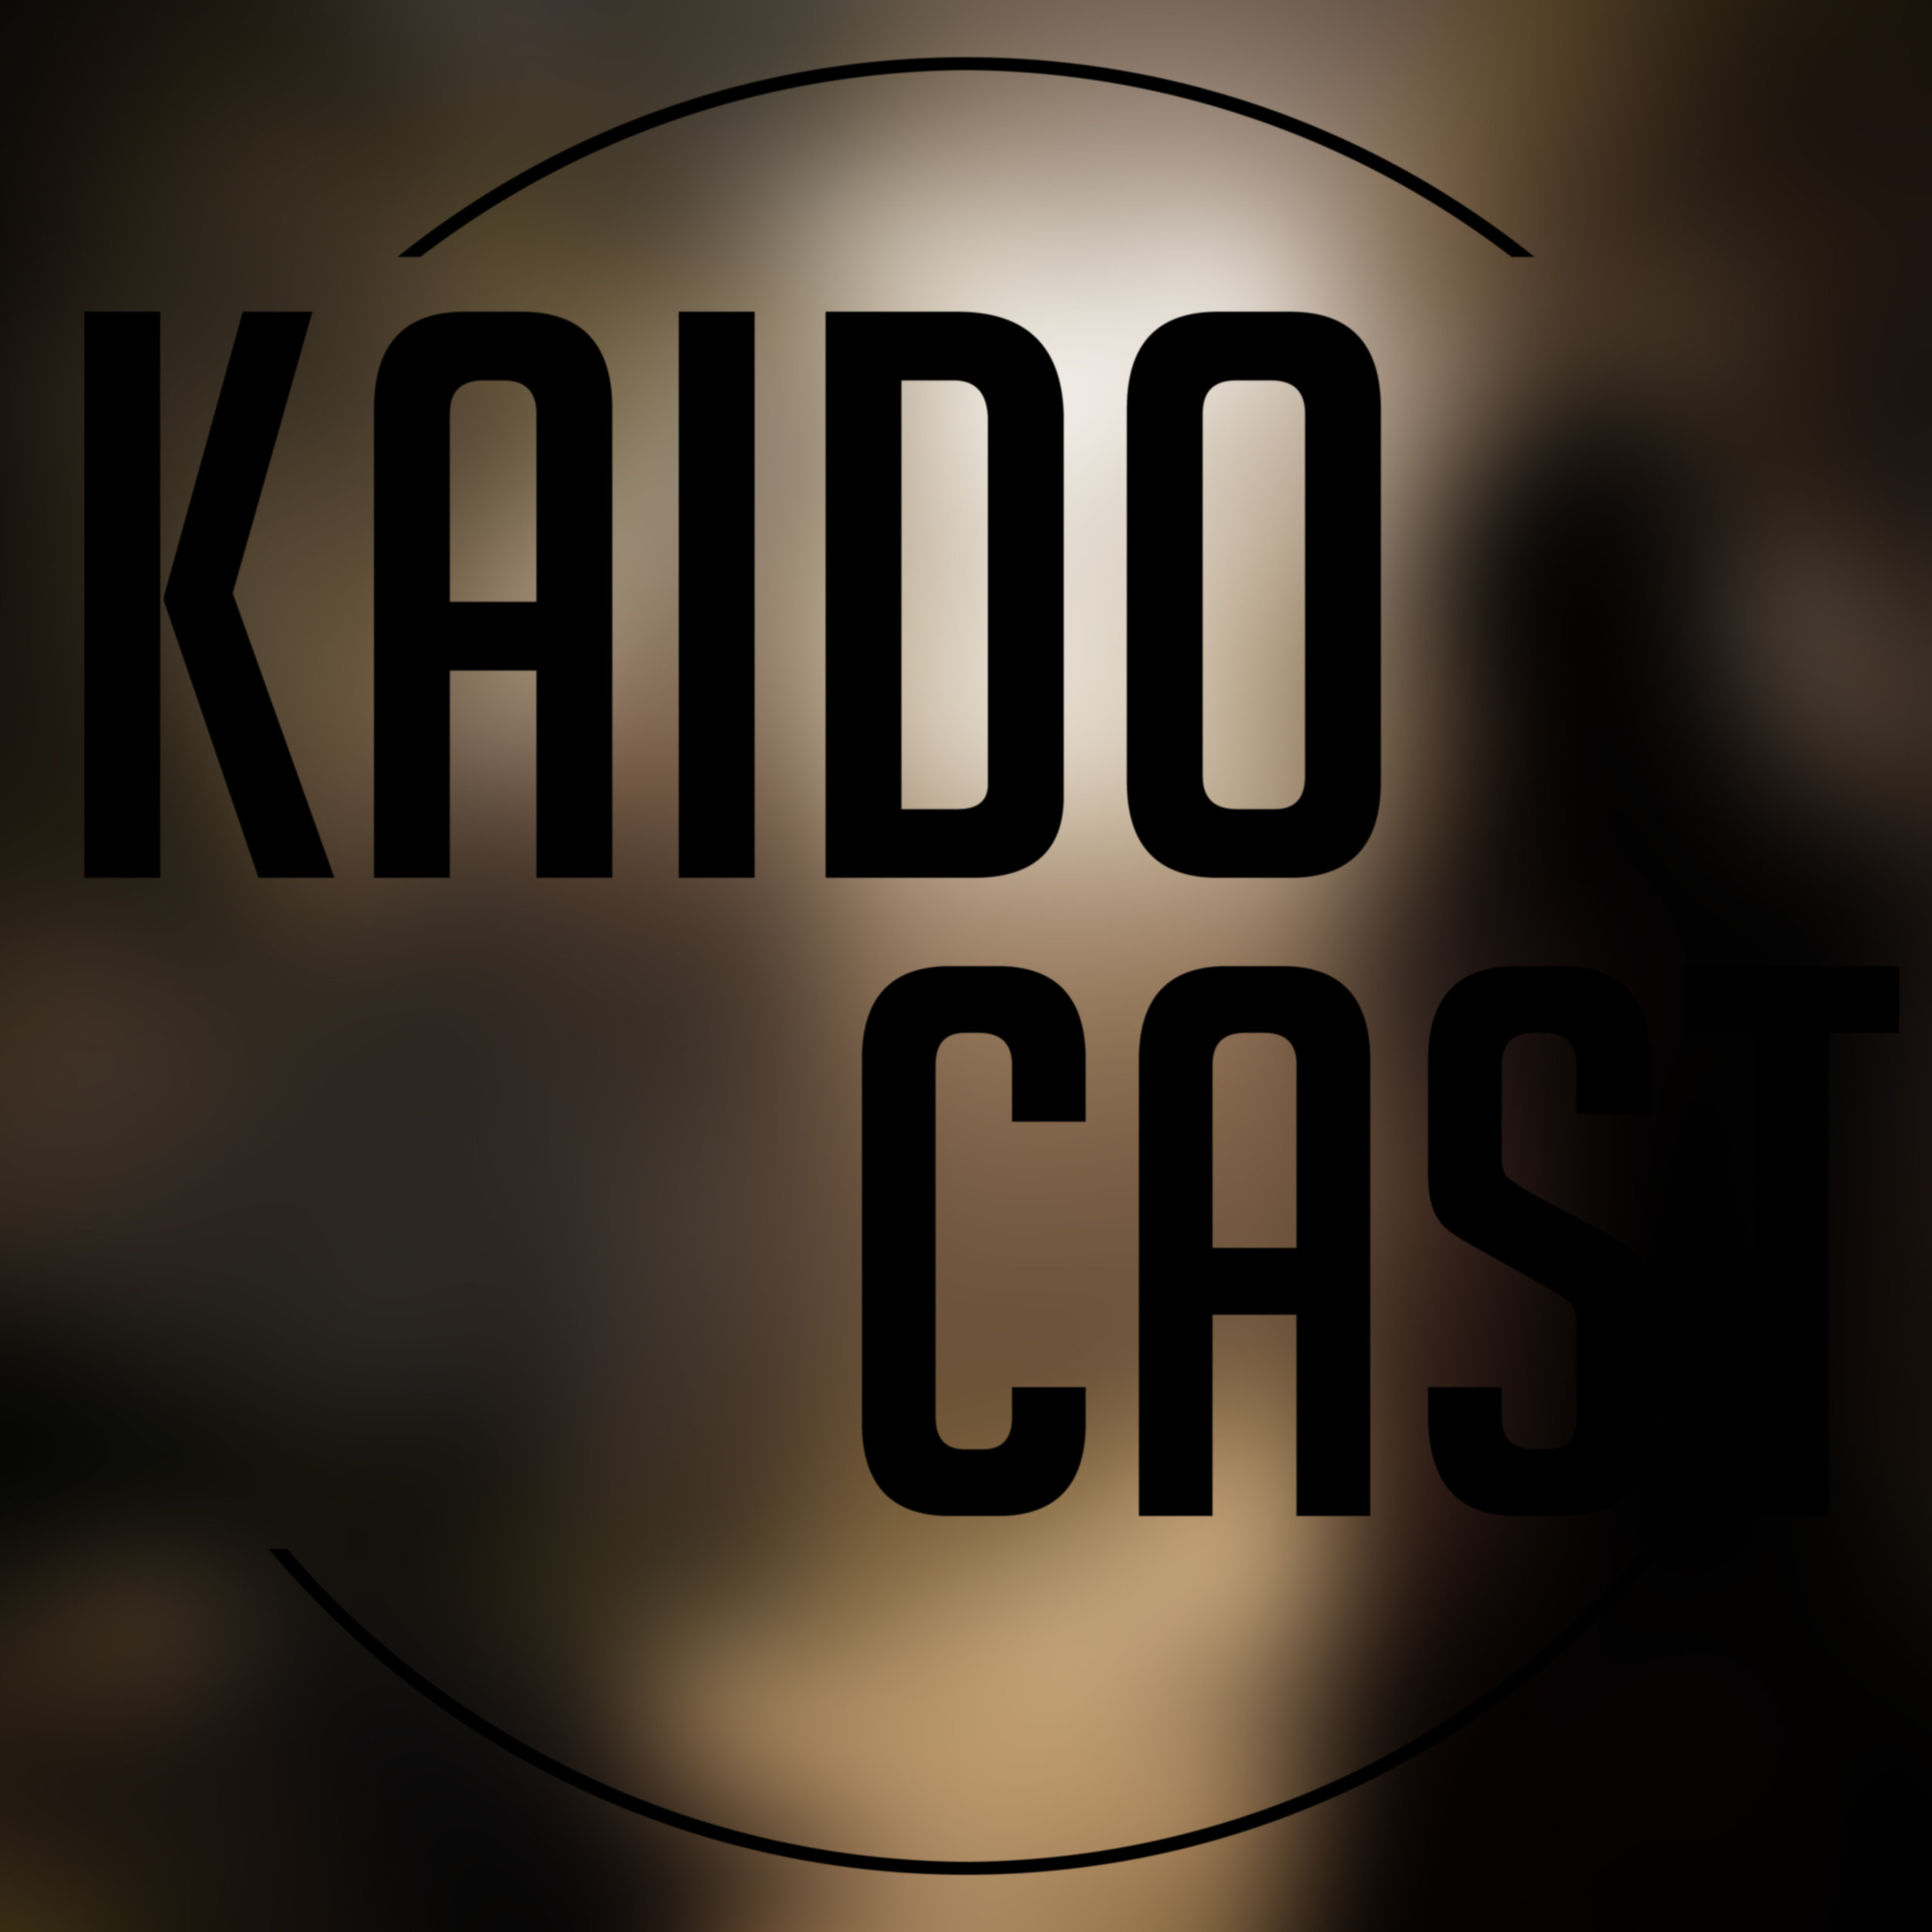 KAIDO Cast 10 - Dota-thlon - This week Dave finds himself raiding tombs and walking weird, Rob makes sure not to overlook, and Zac builds kingdoms in order to escape his mental illnesses.